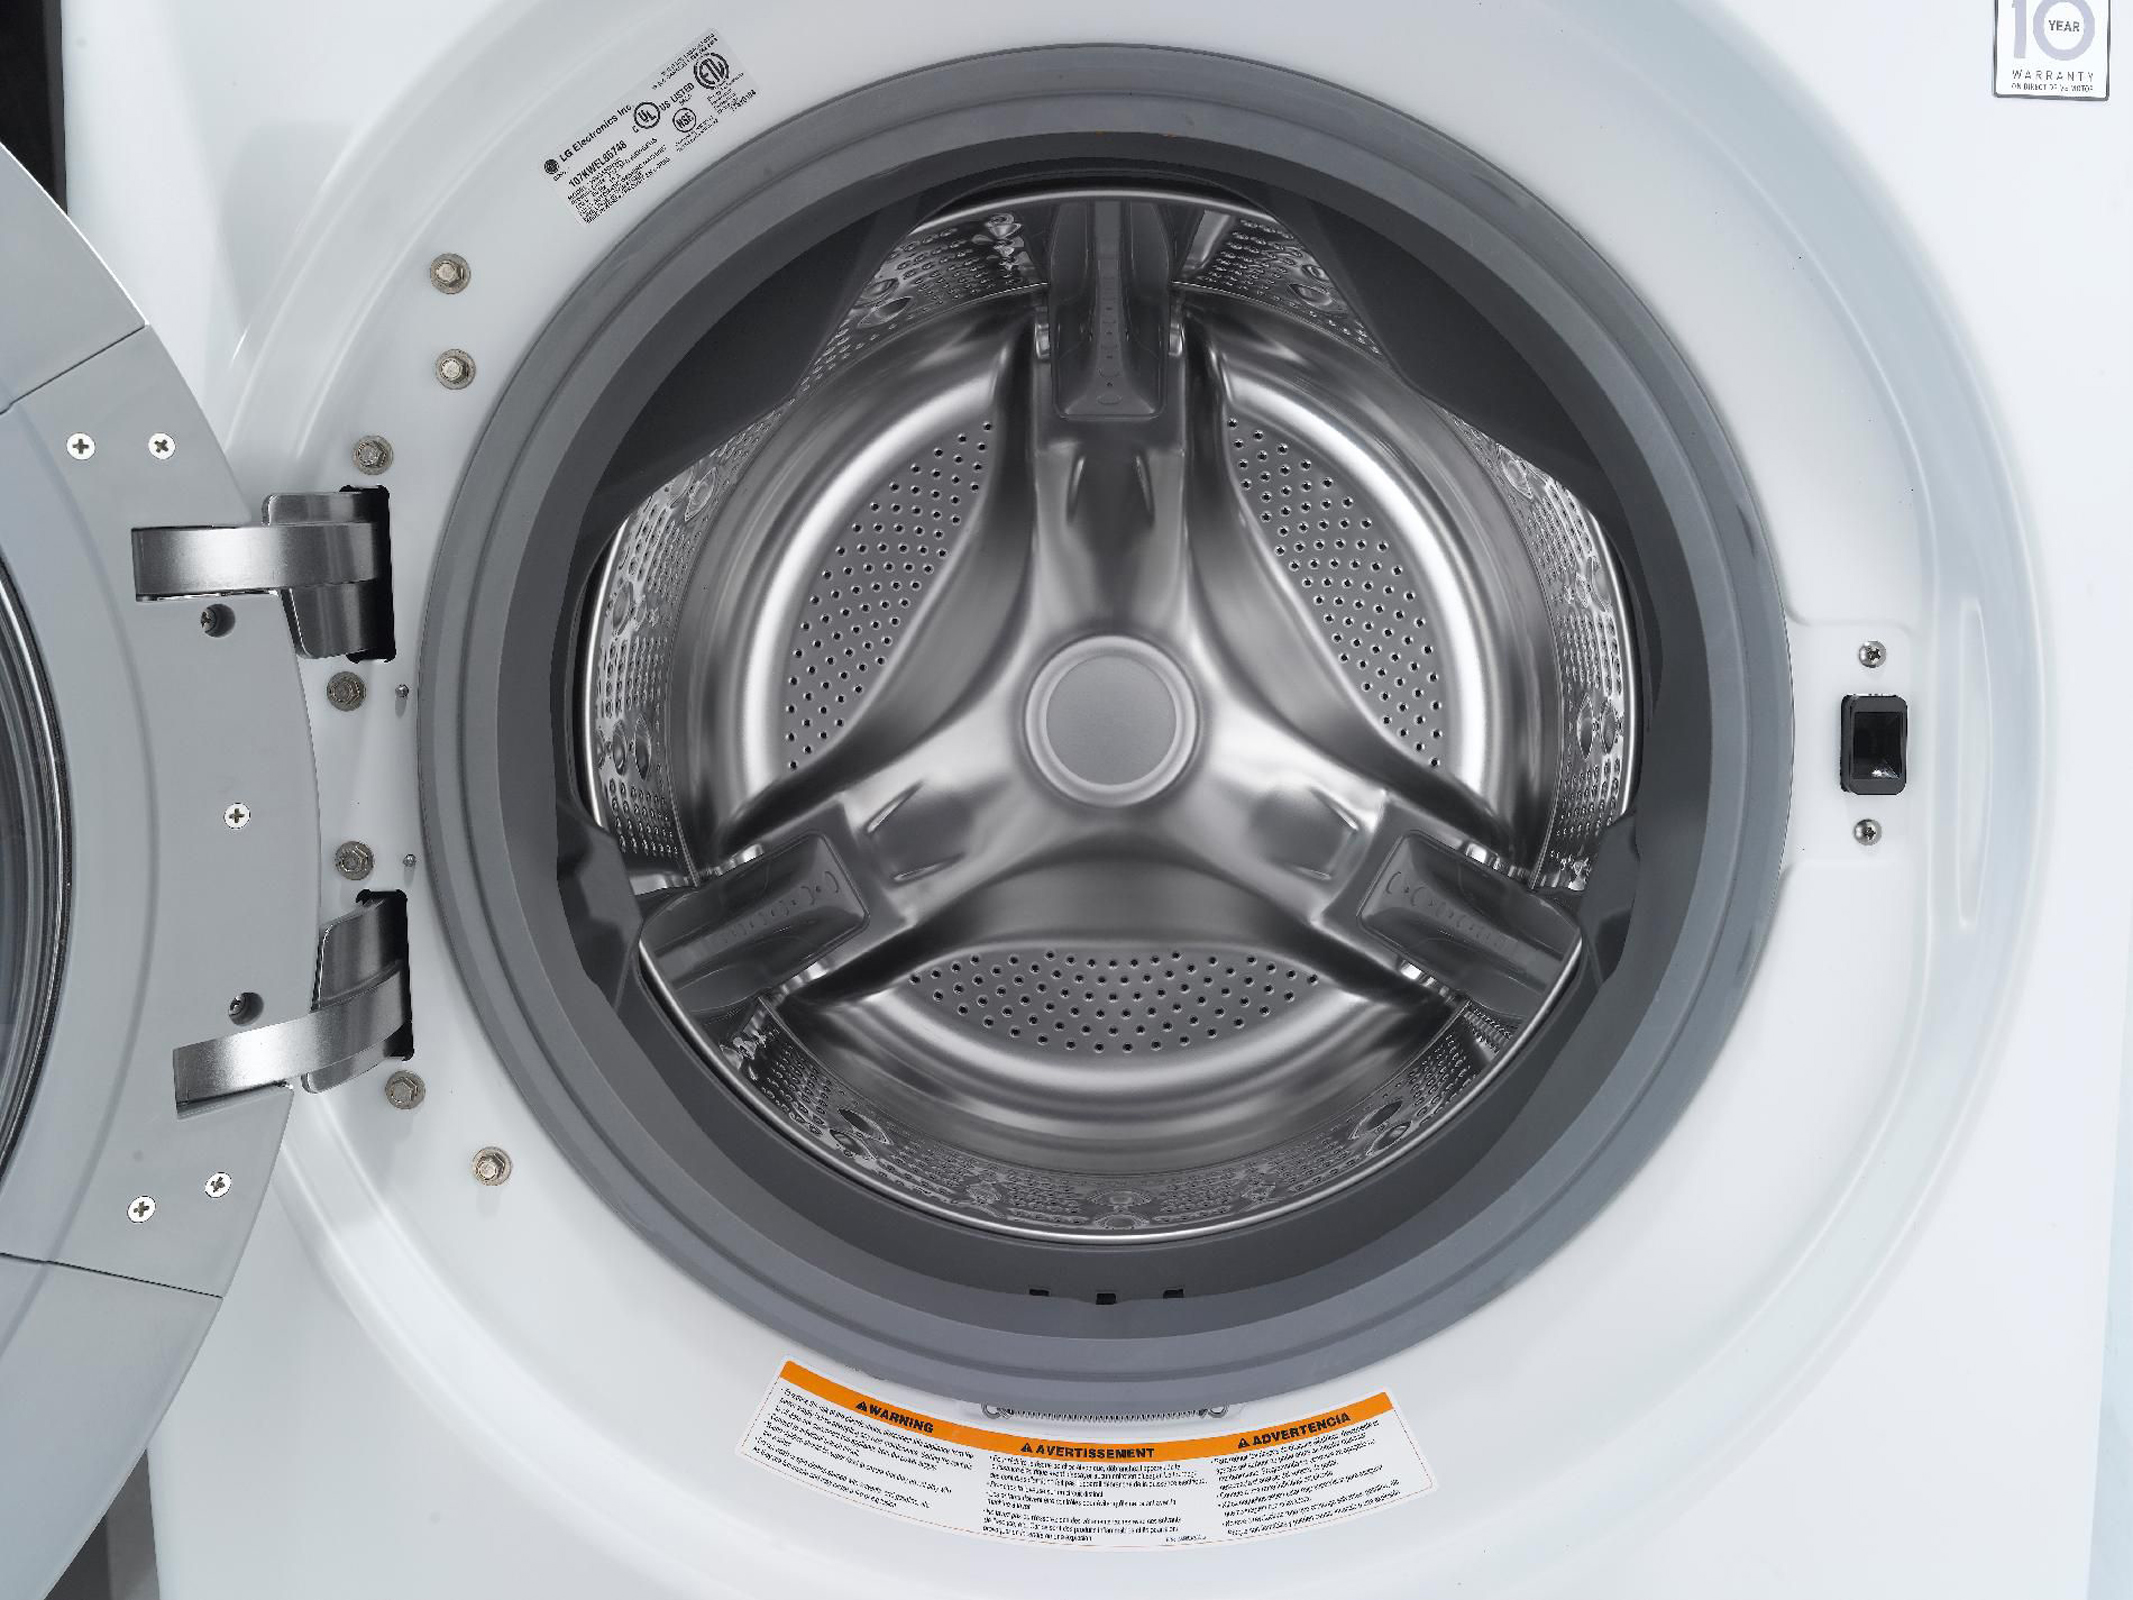 LG 4.0 cu. ft. Ultra-Large-Capacity Steam Front-Load Washer - White